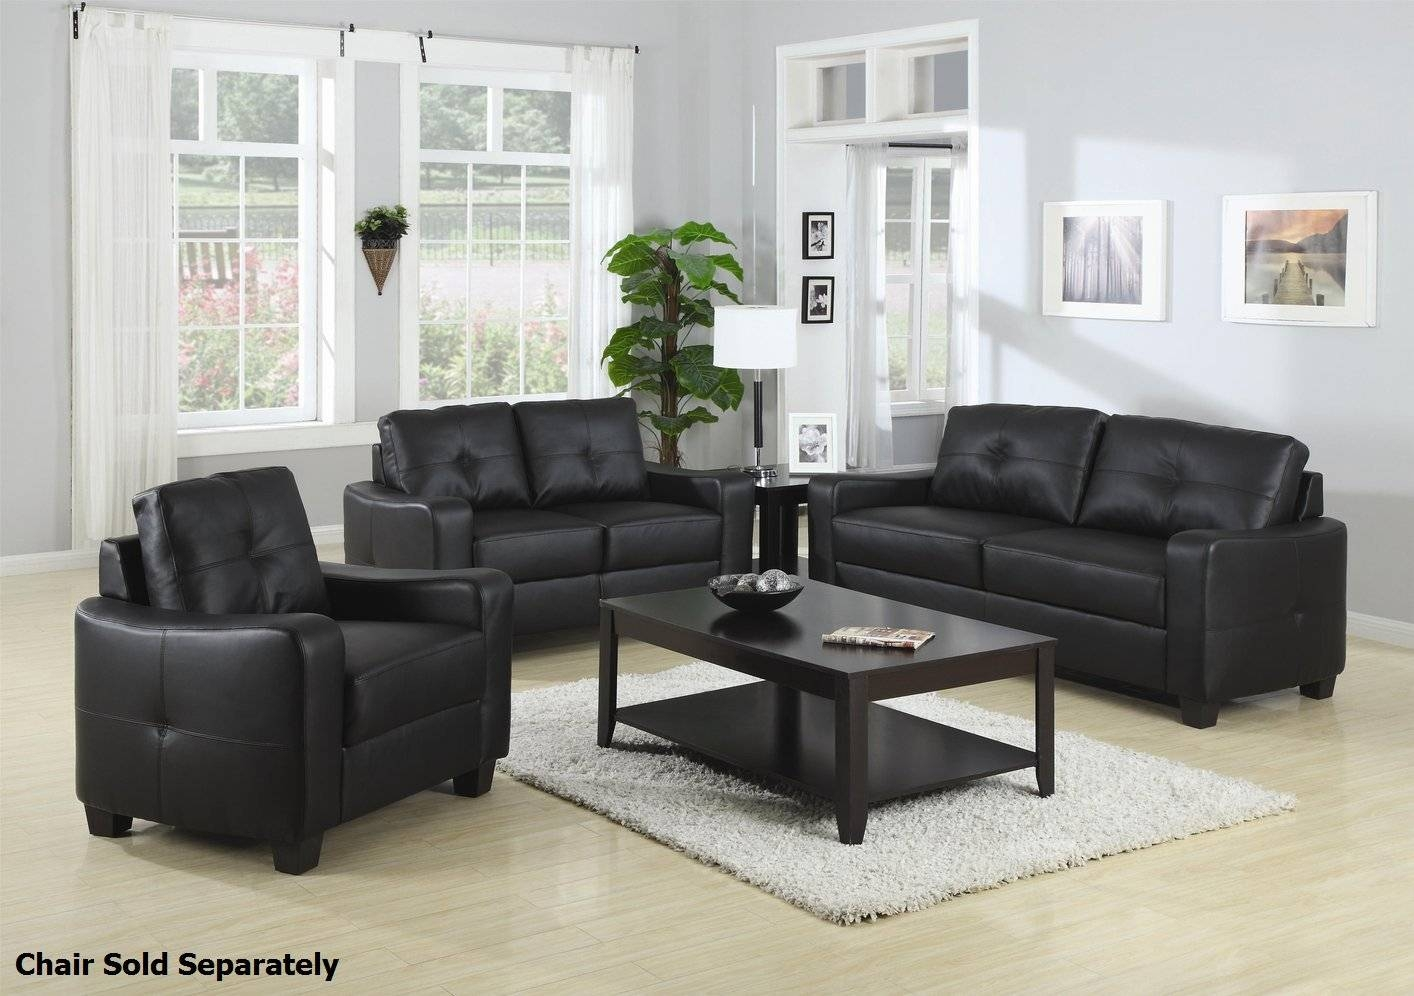 Jasmine Black Leather Sofa And Loveseat Set - Steal-A-Sofa intended for Black Leather Sofas and Loveseat Sets (Image 12 of 15)